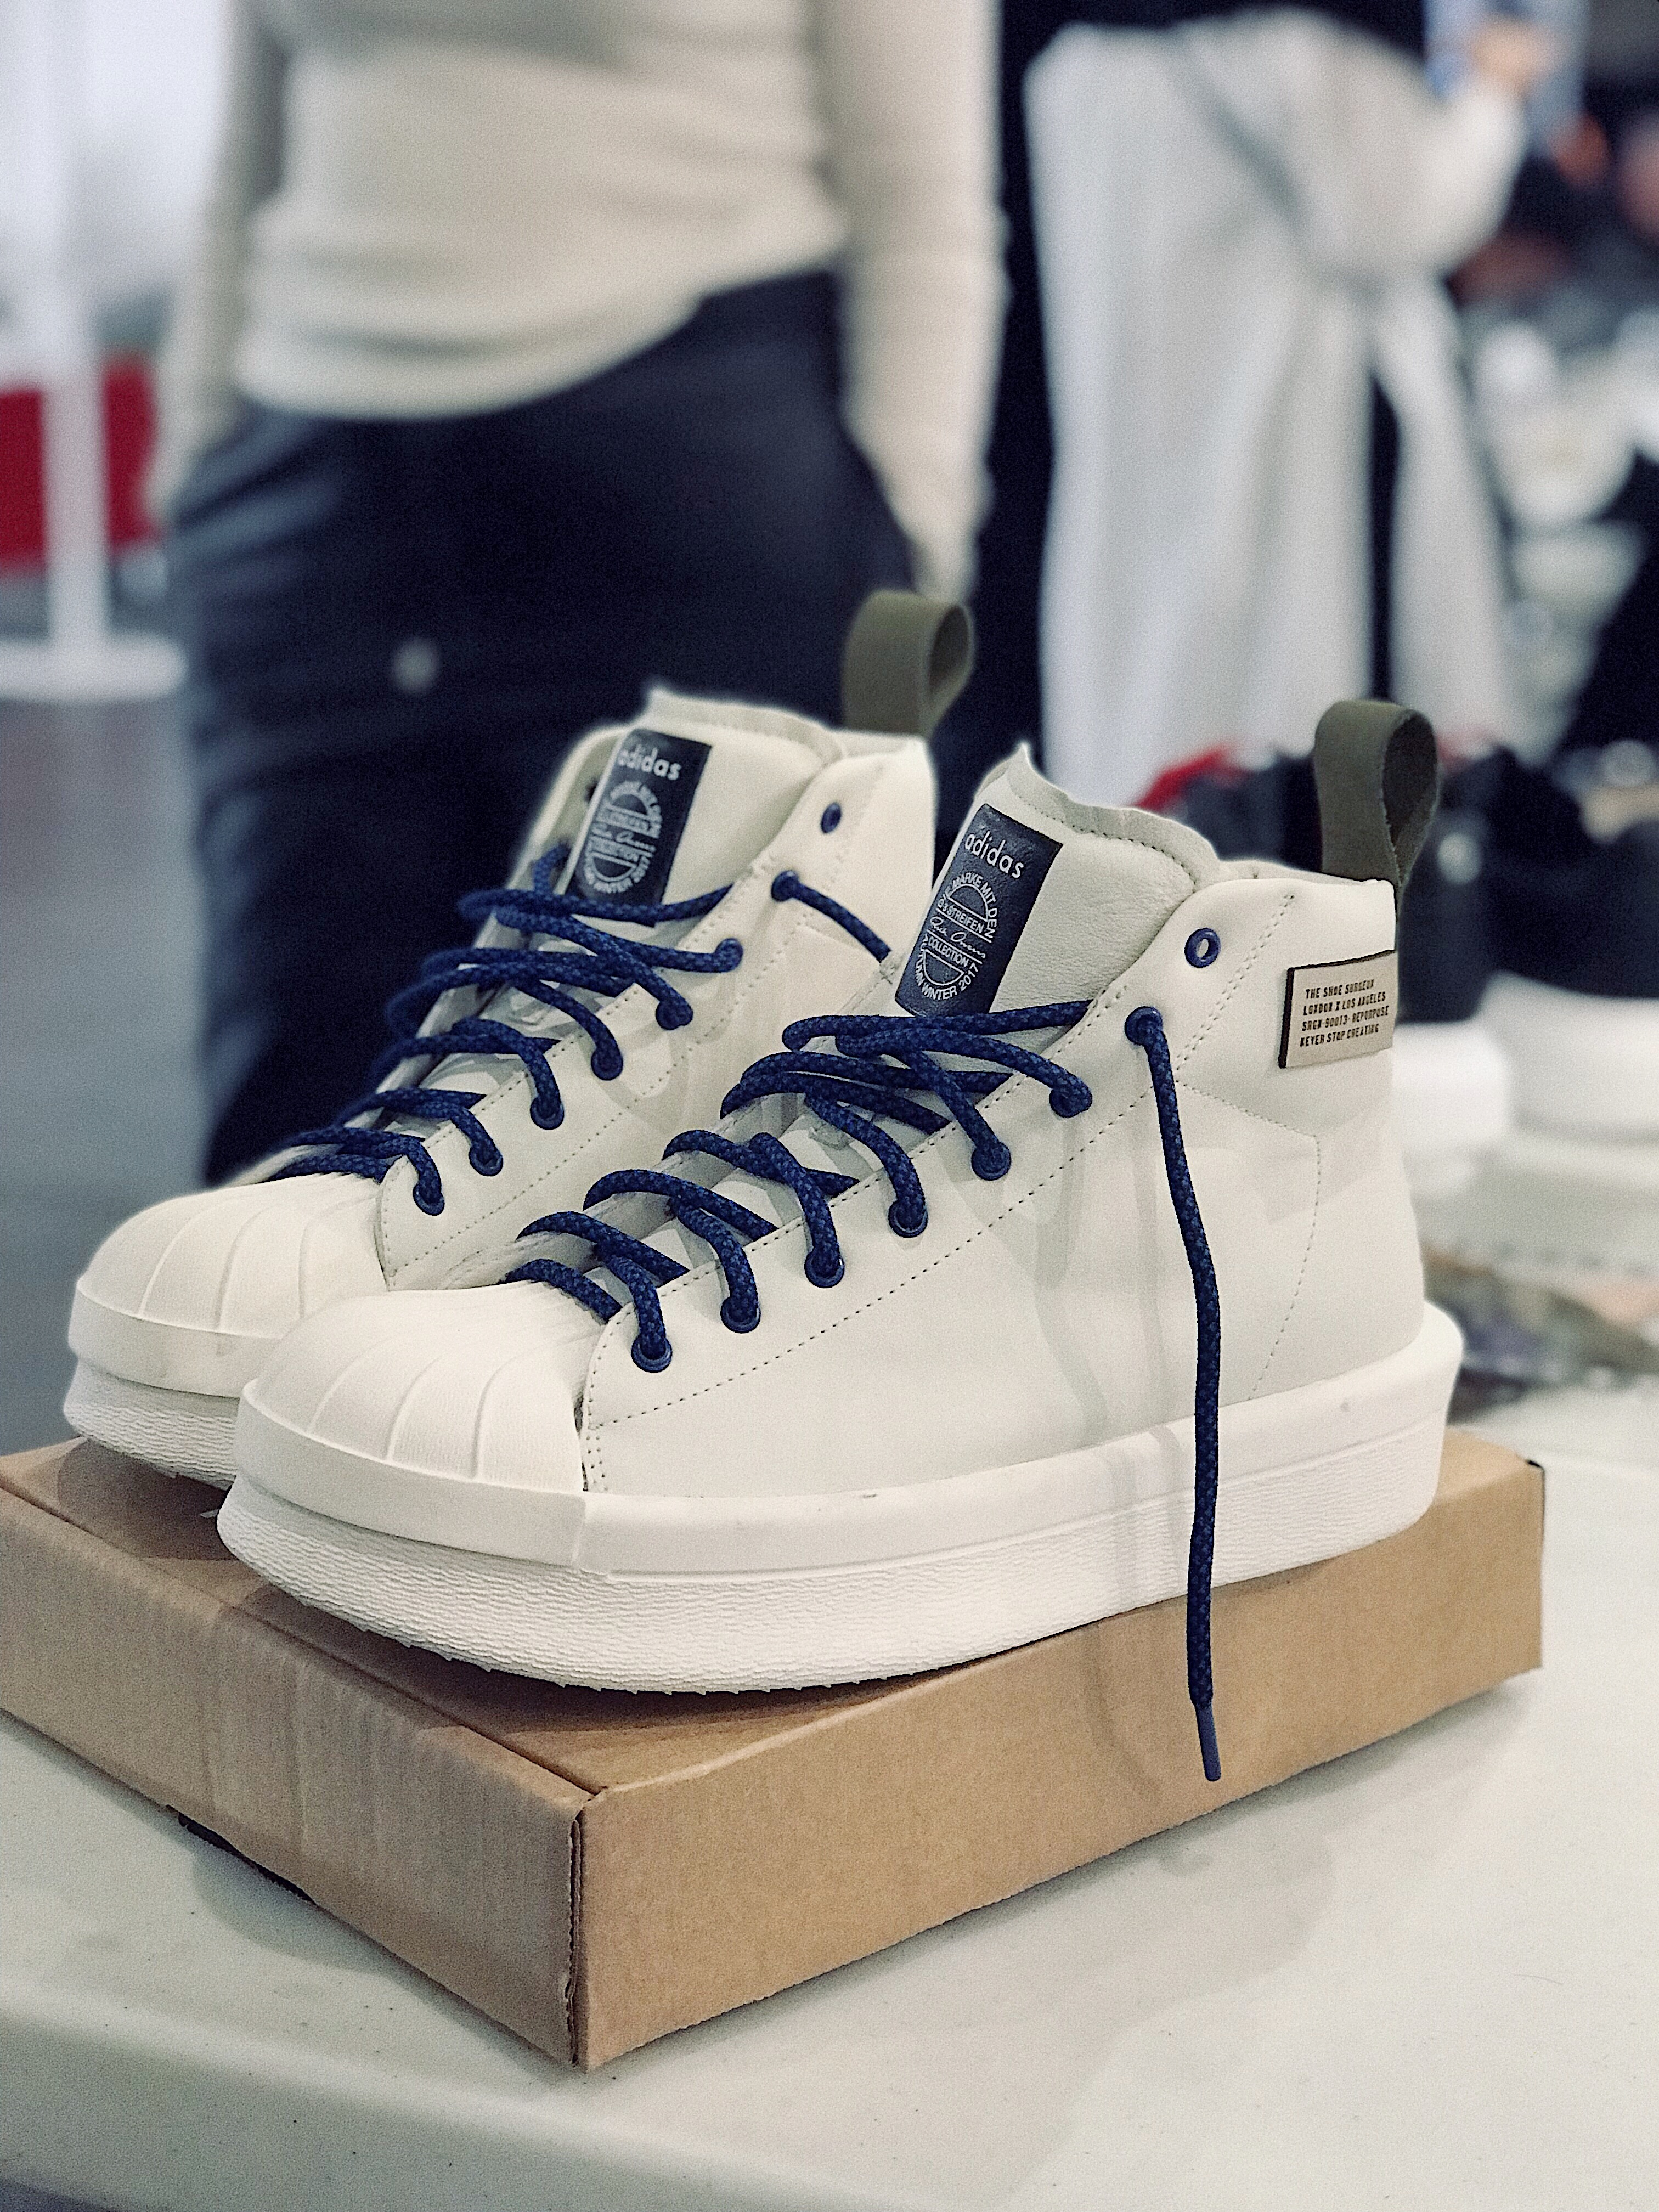 Farfetch x The Shoe surgeon london event customized adidas x rick owens